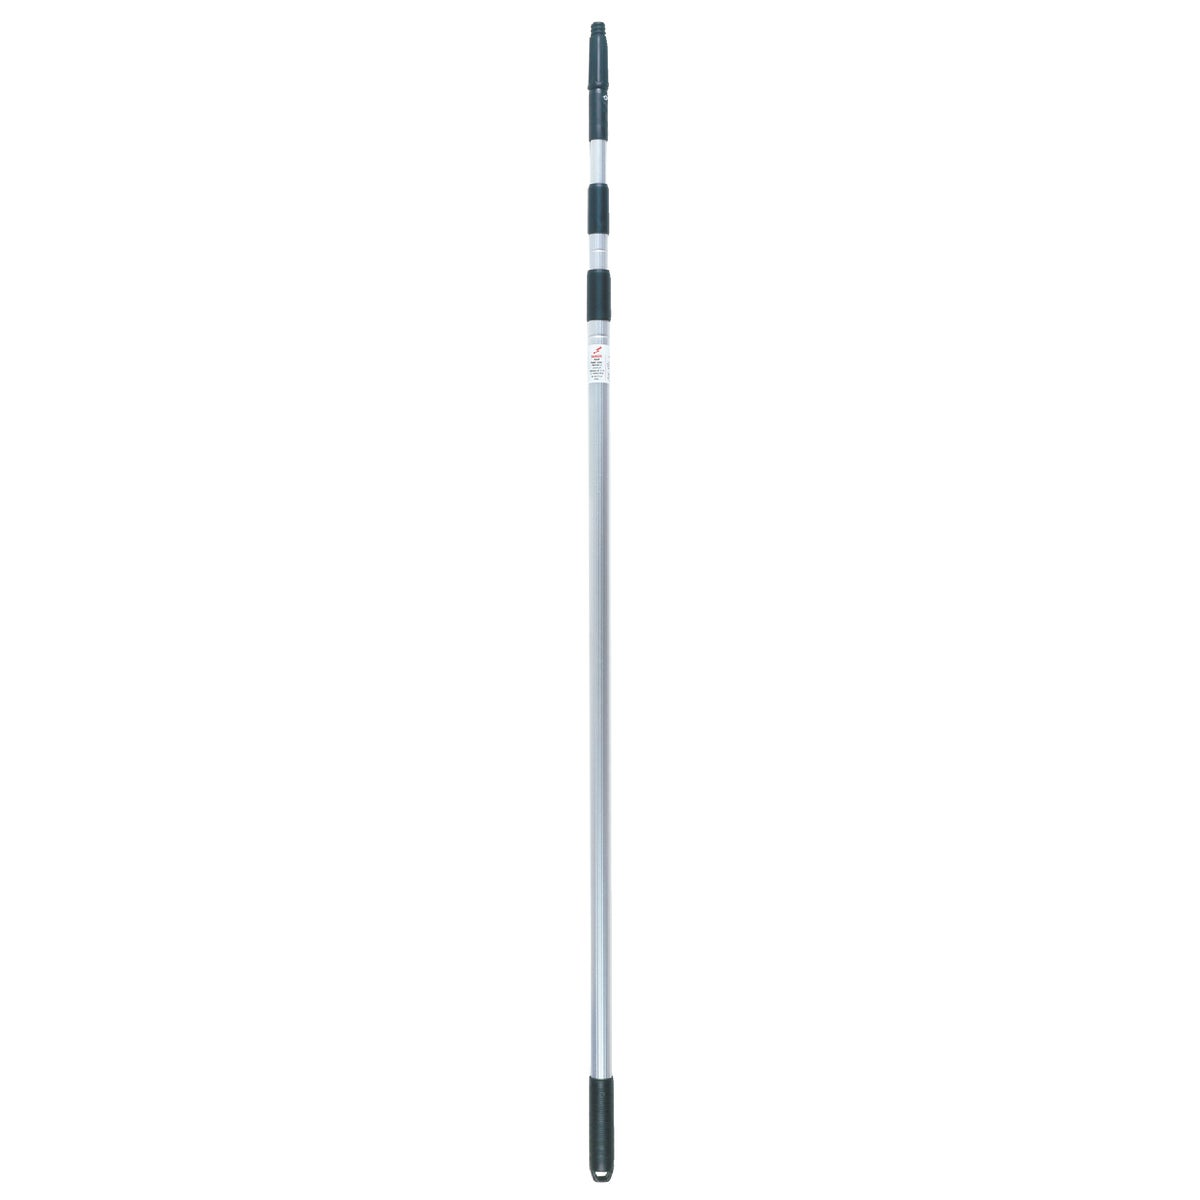 11' ALUMINUM TELEPOLE - 91012 by Unger Indust/incom